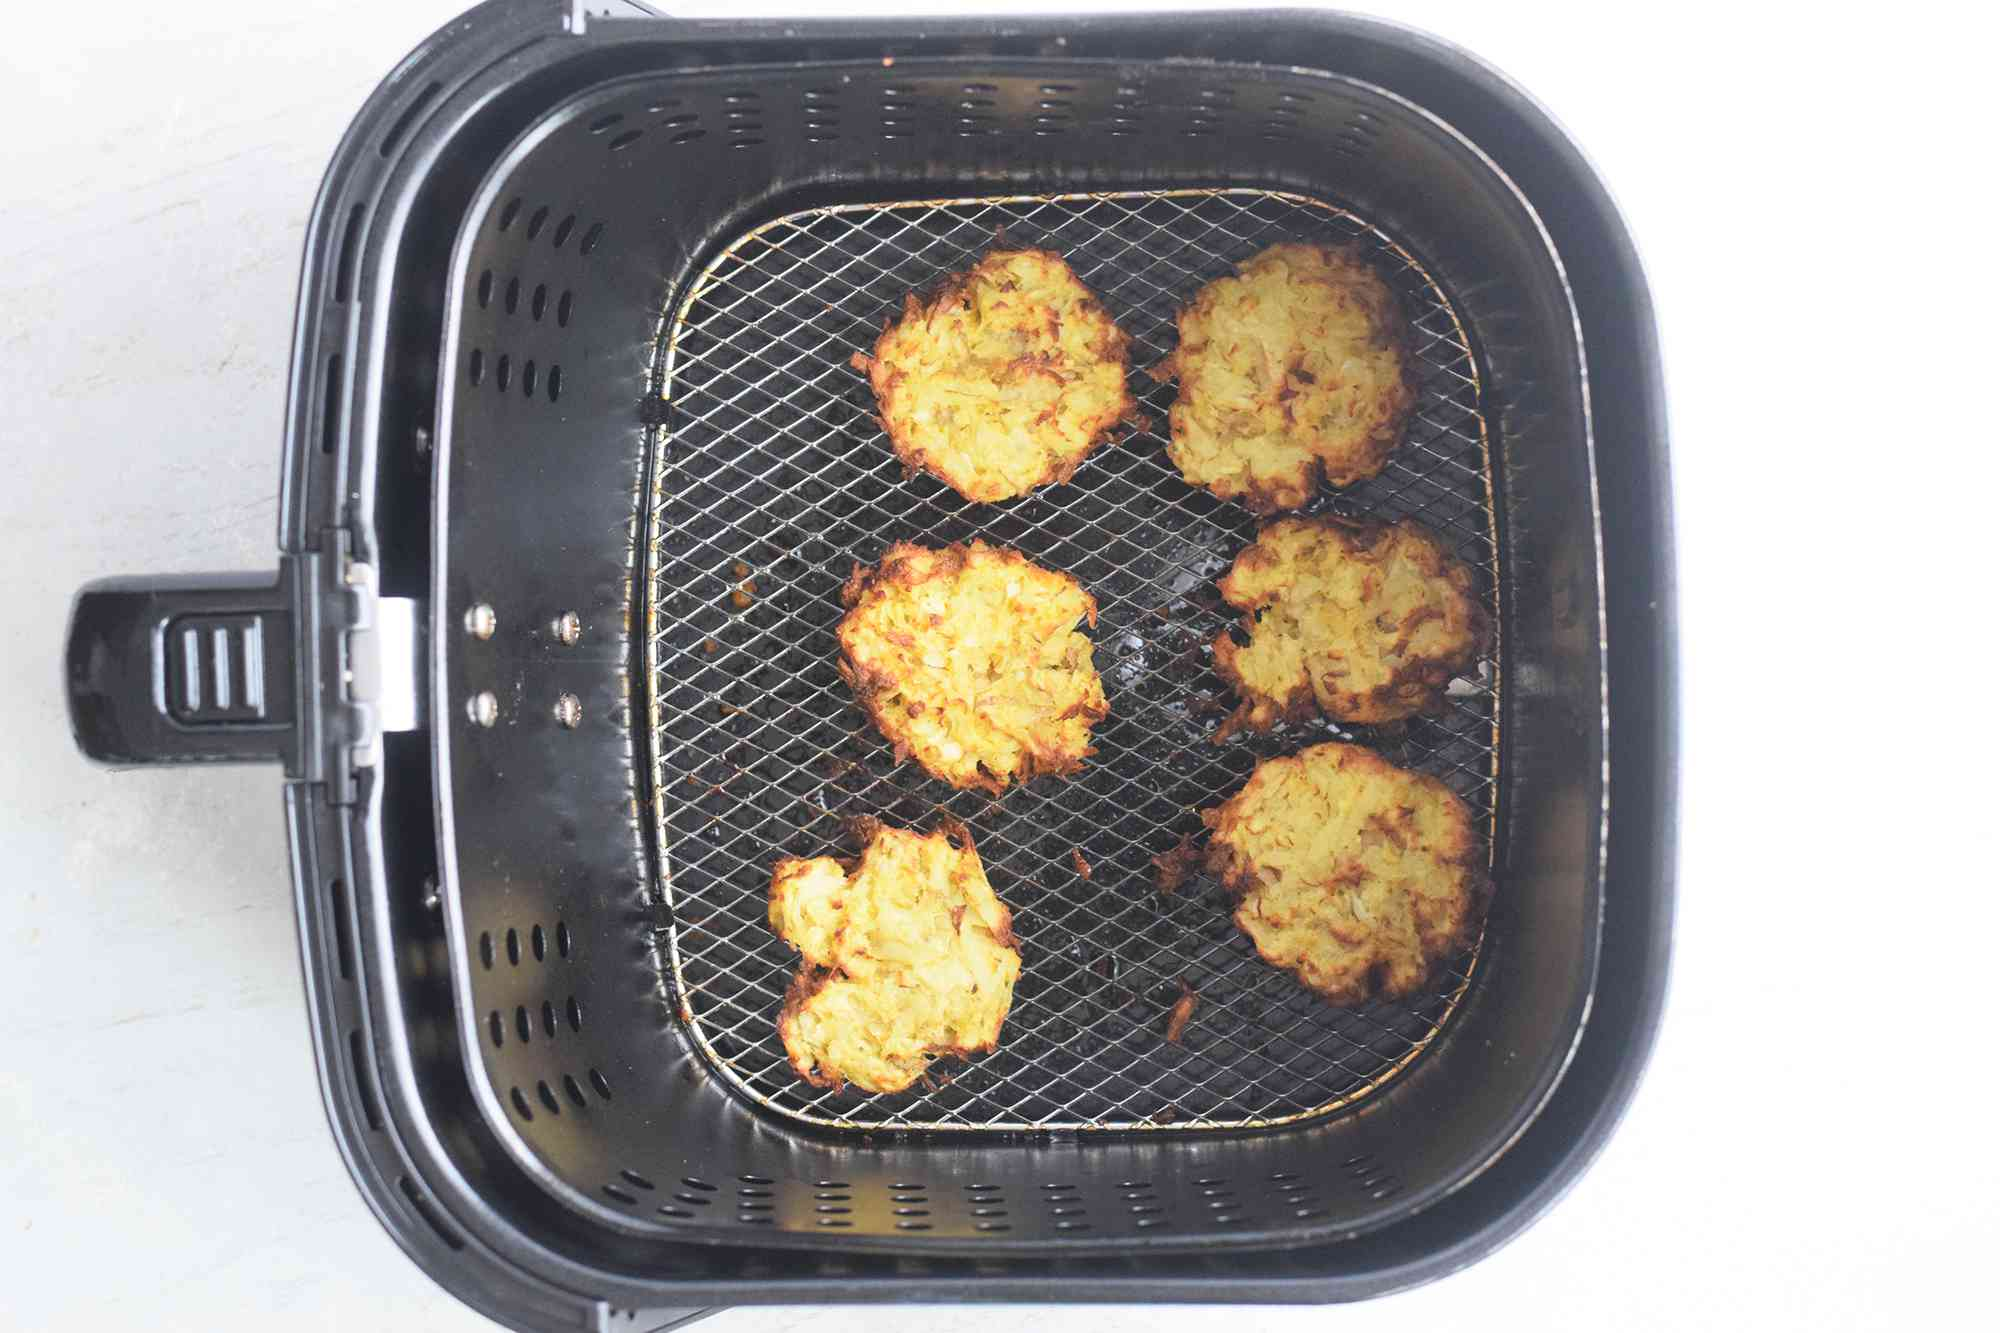 Cooking until both sides of latkes are golden brown and crisp